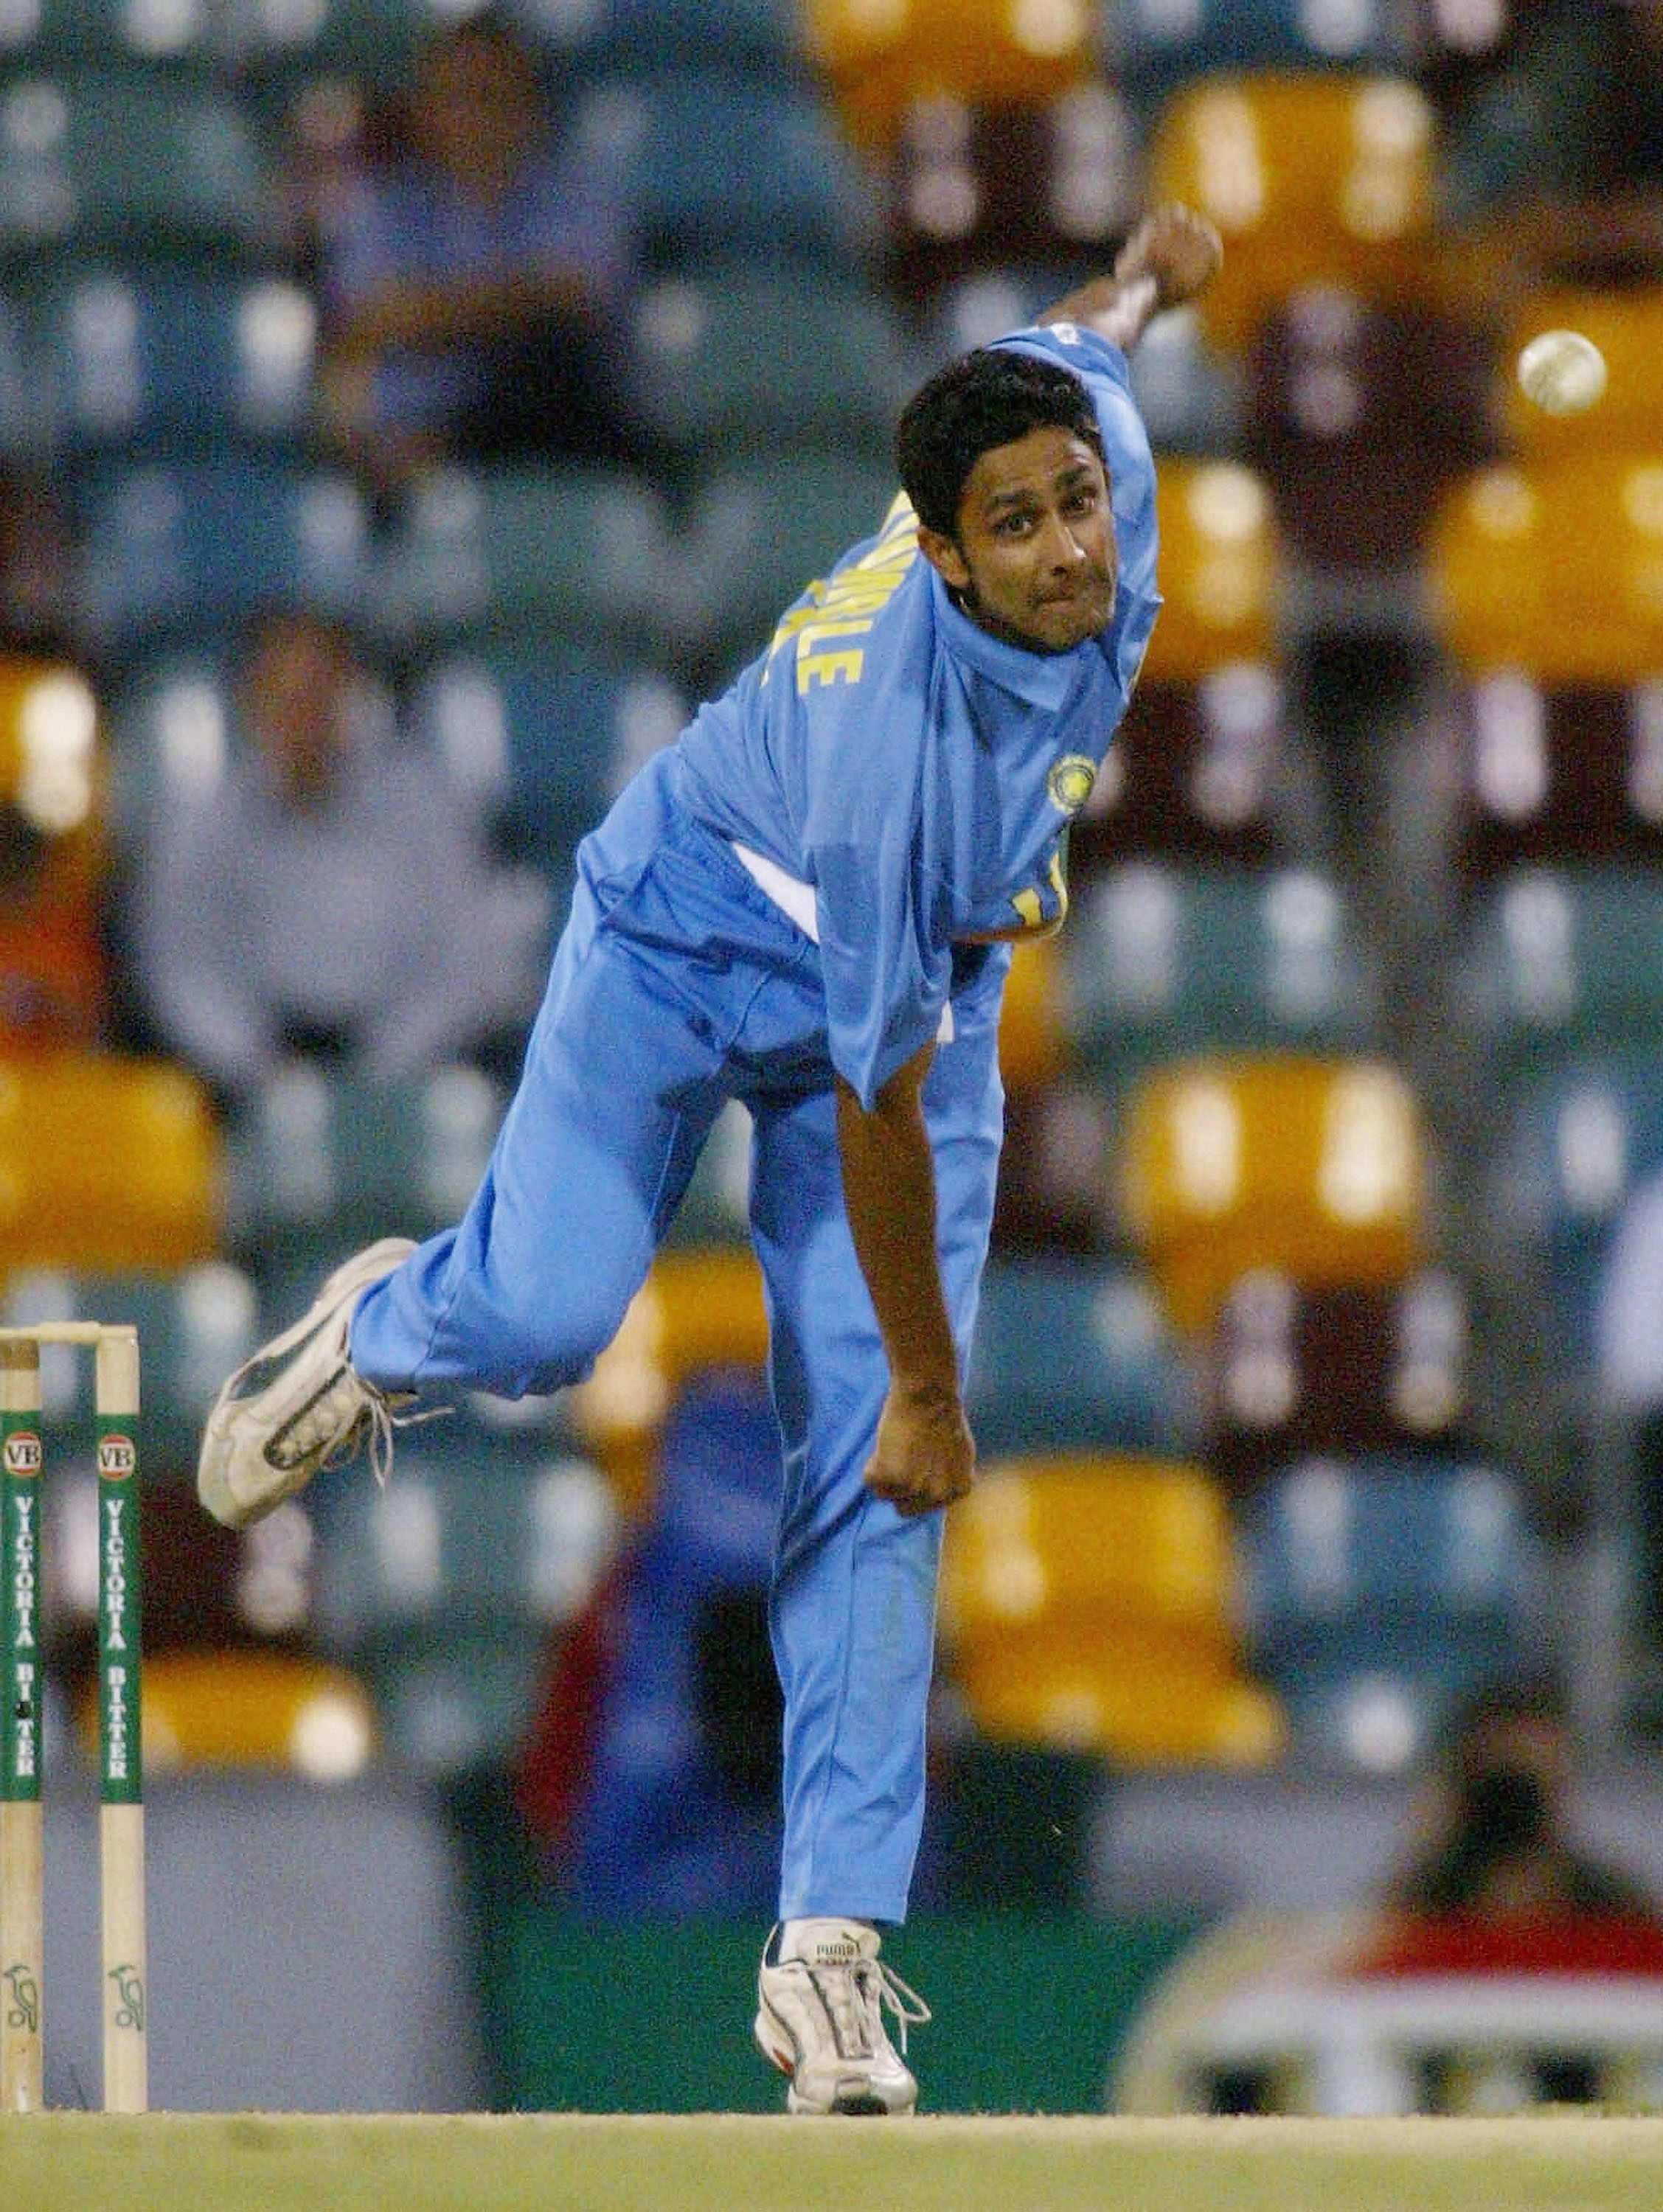 Stats: Most wickets for India in ODI cricket